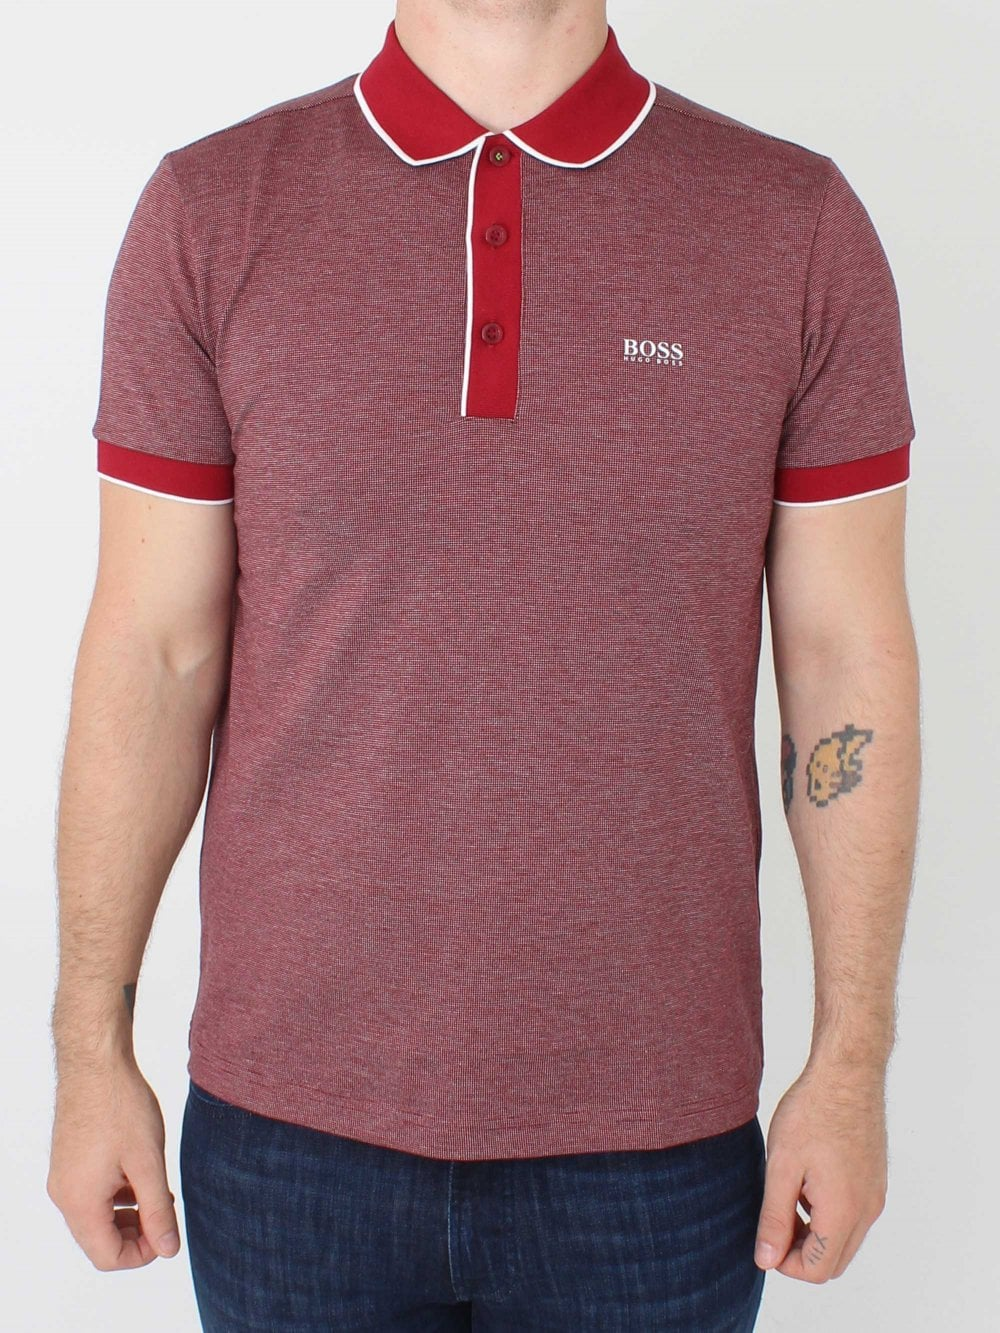 5647dce0d574 Hugo Boss Paddy 5 Polo in Dark Red | Northern Threads